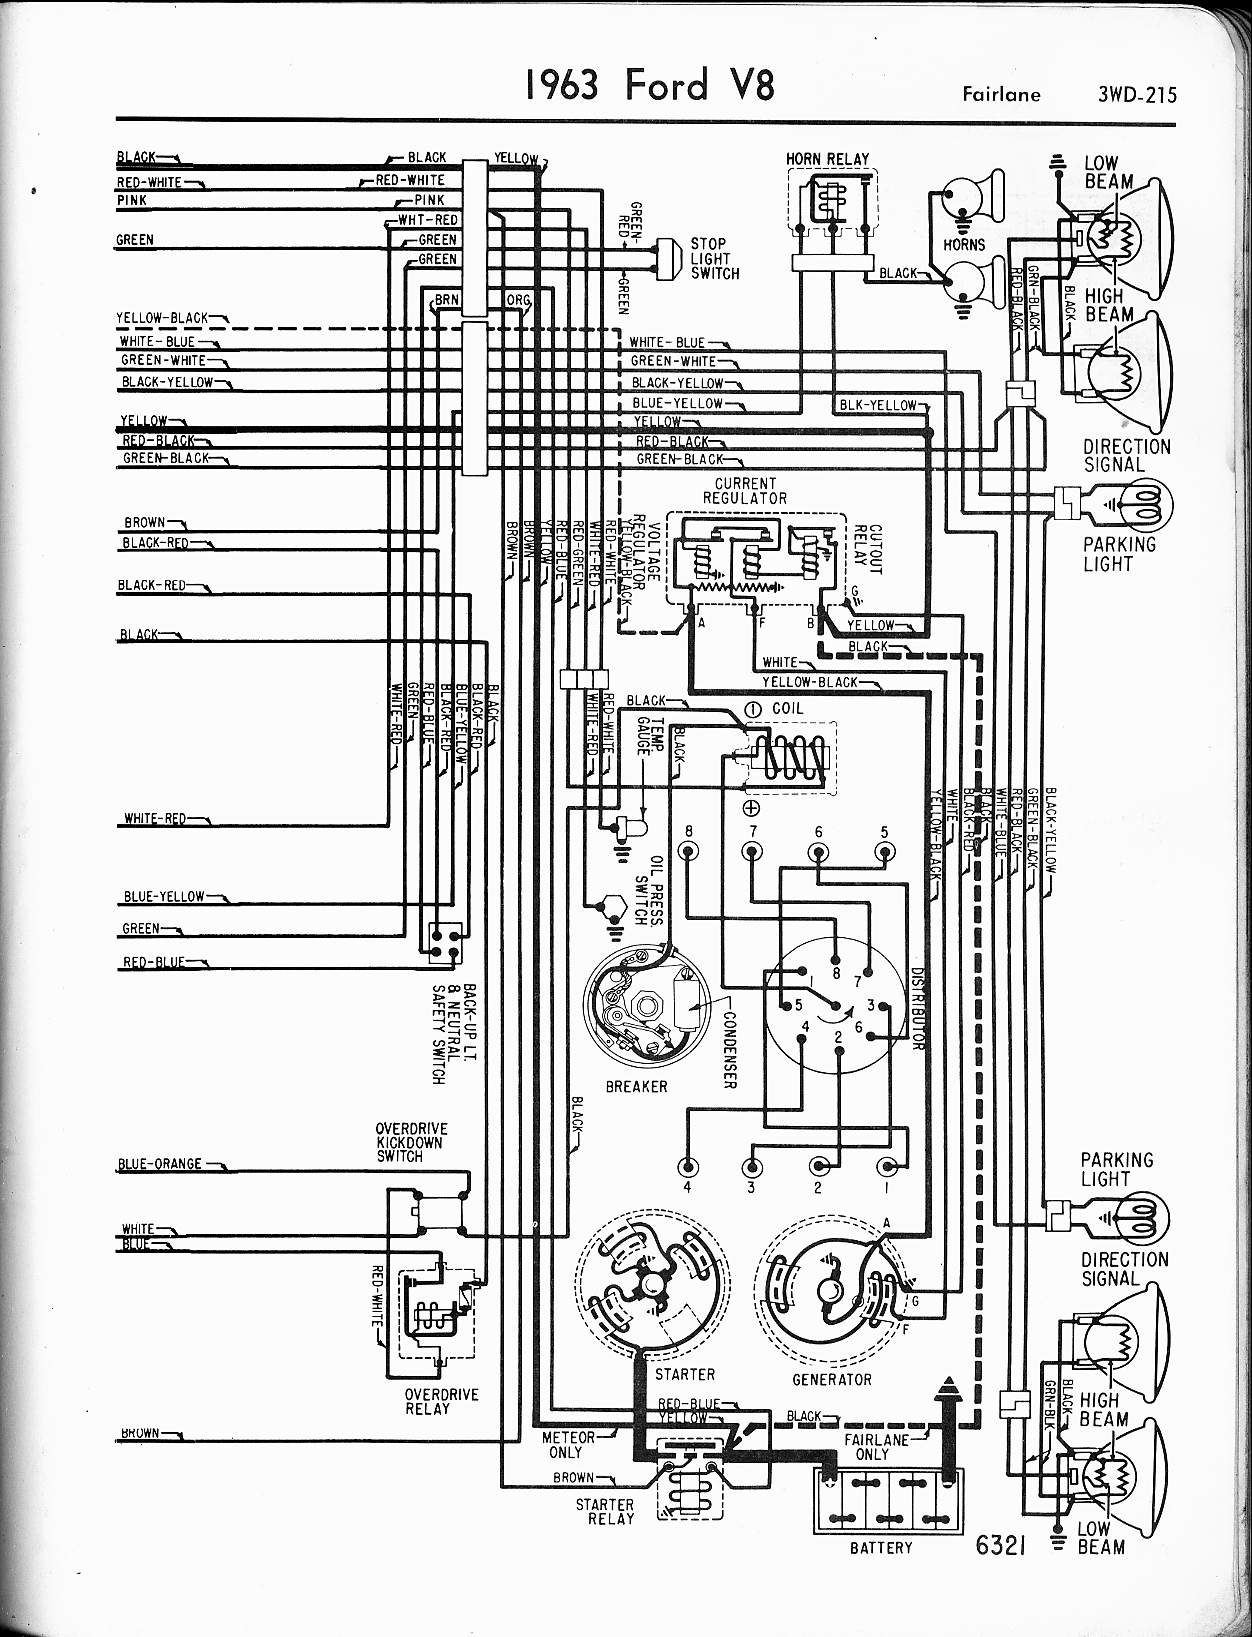 1956 Mercury Wiring Diagram Reinvent Your Chevy Fuel Gauge Schematic 1963 Ford Galaxie Detailed Schematics Rh Lelandlutheran Com 200 Outboard